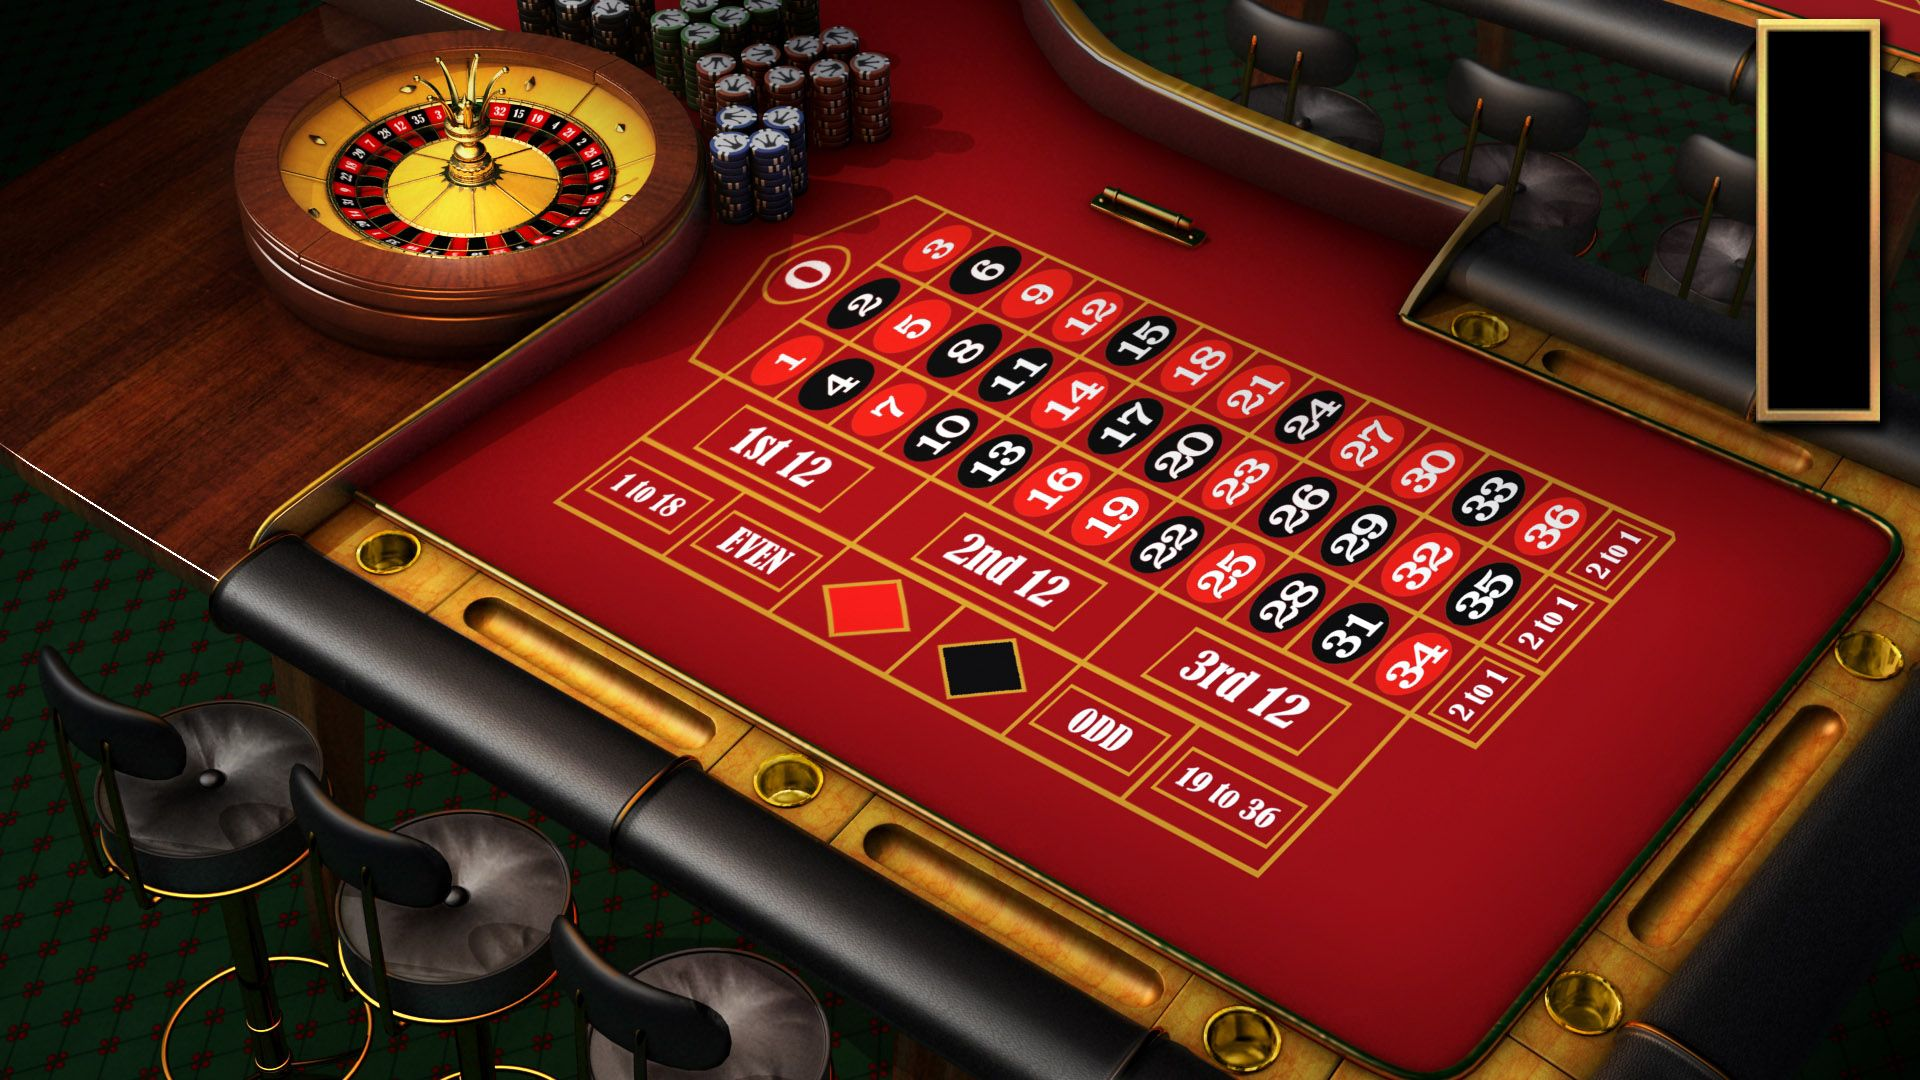 Exactly How To Take The Frustration Out Of Online Casino